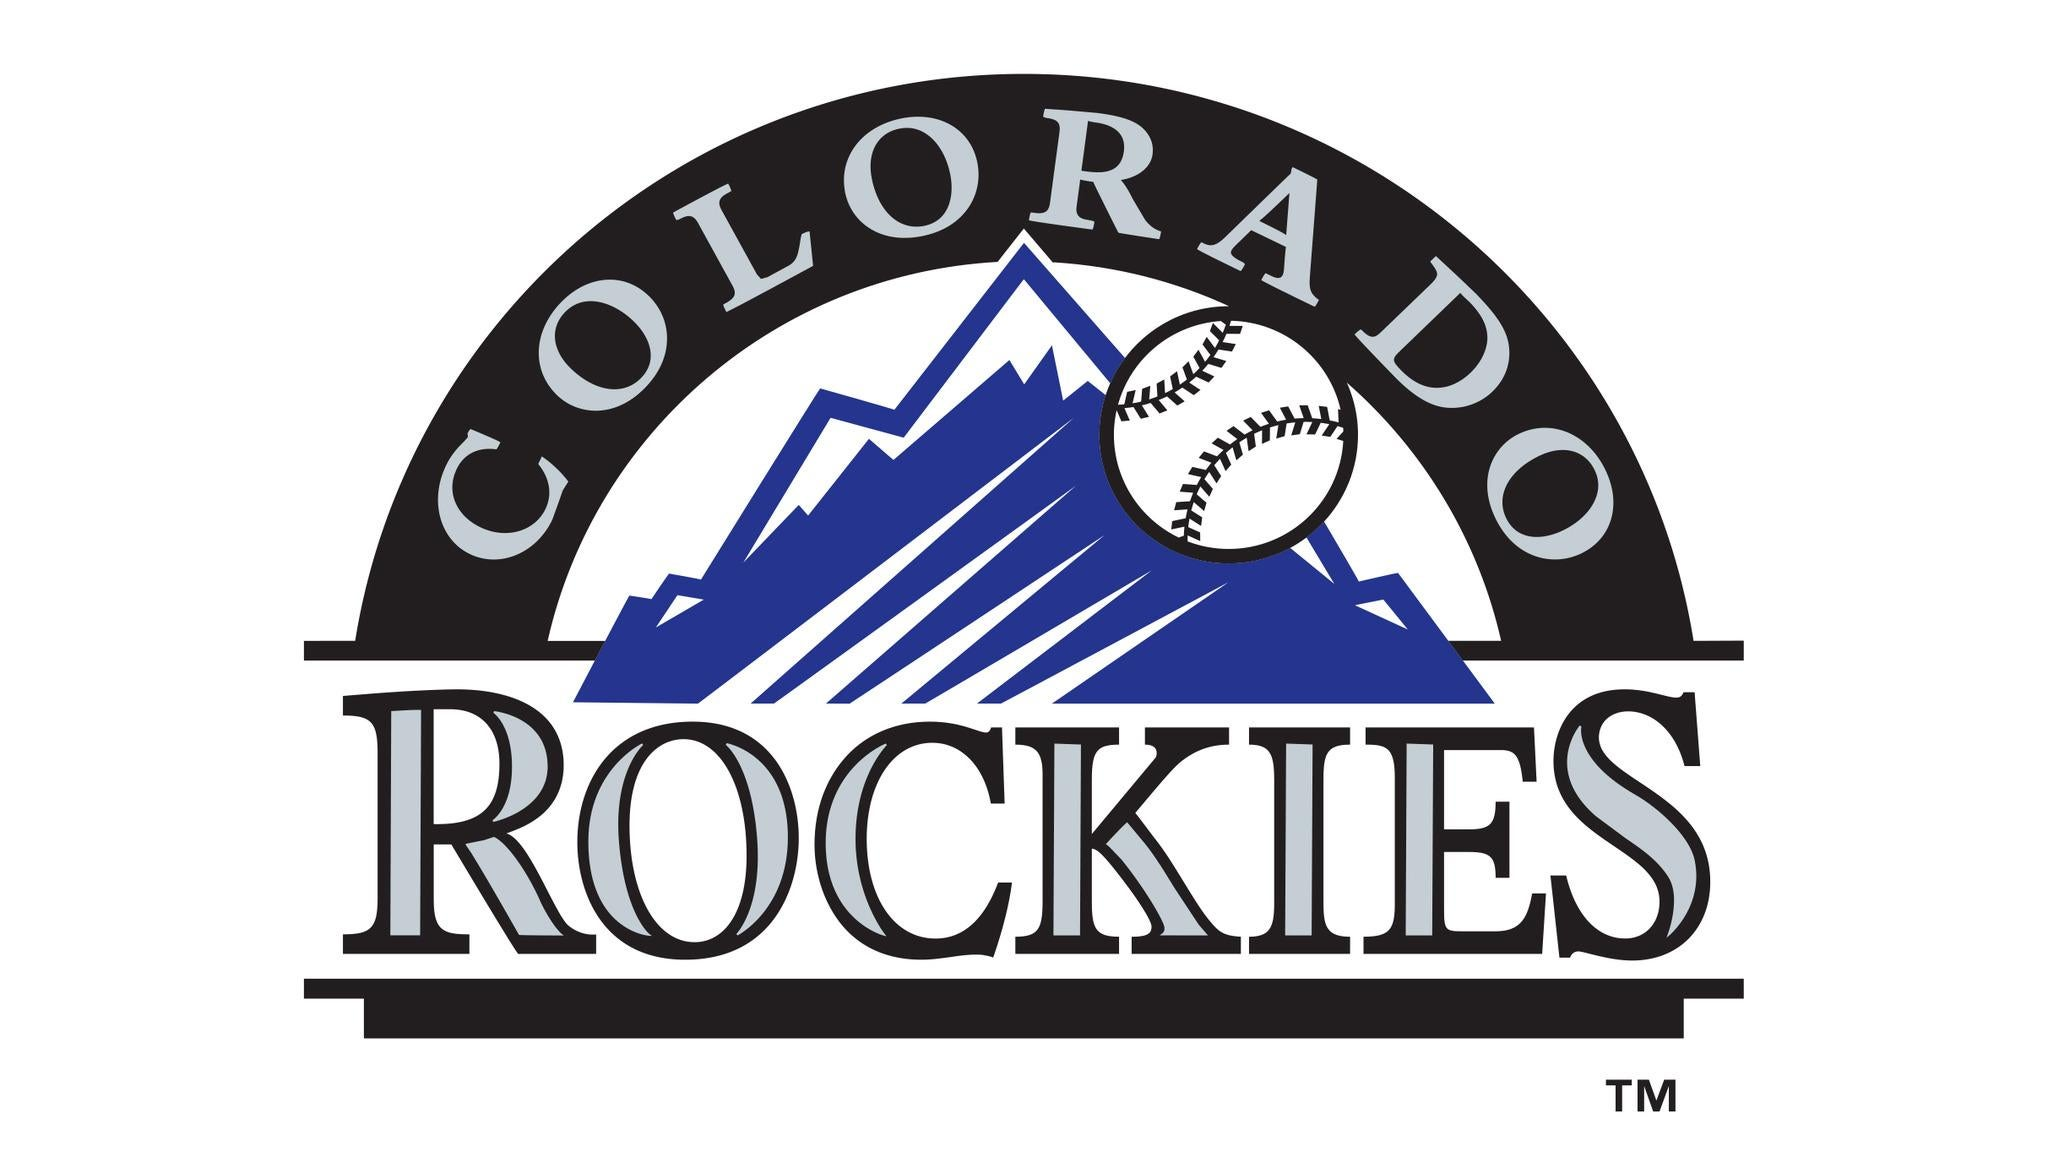 Colorado Rockies vs. Cleveland Indians at Coors Field - Denver, CO 80205